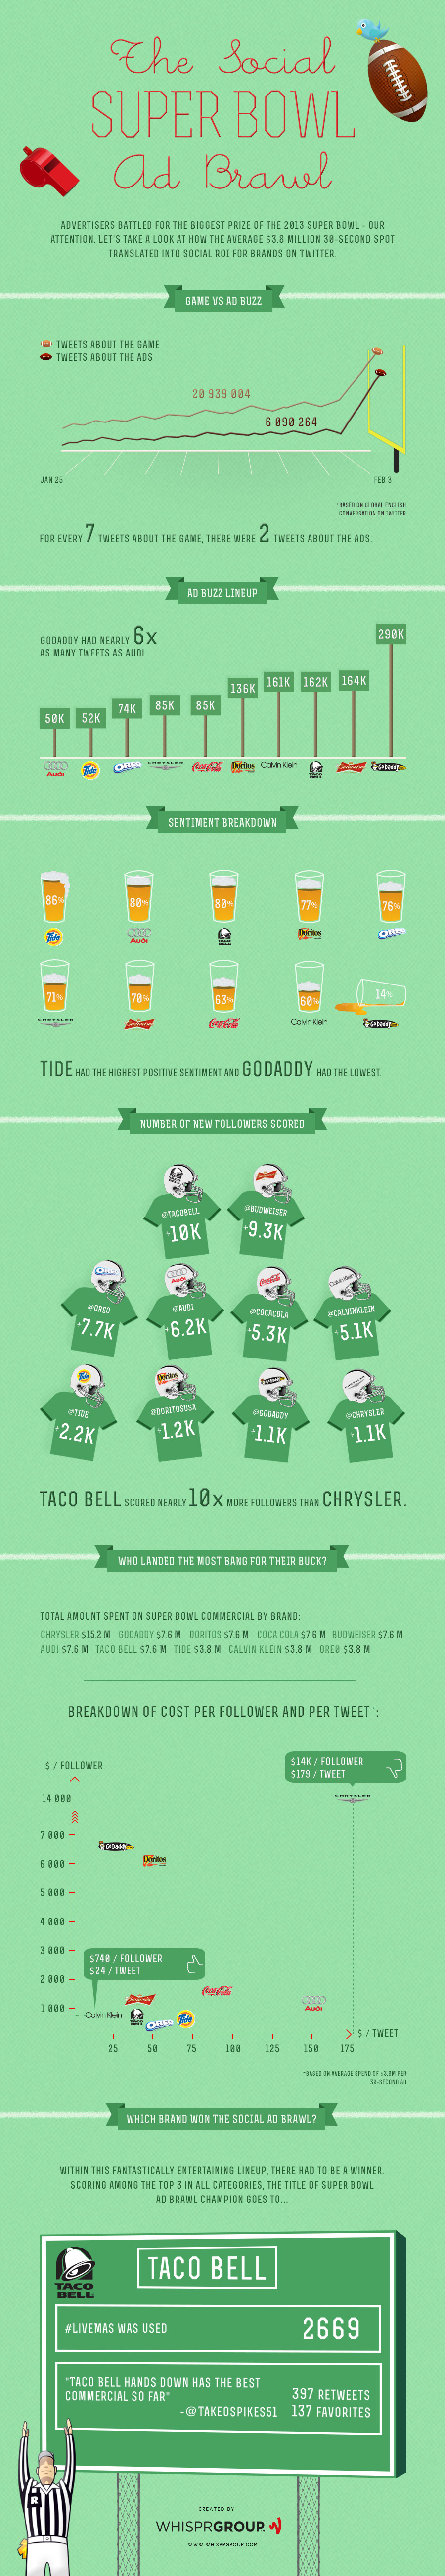 super-bowl-infographic 2013